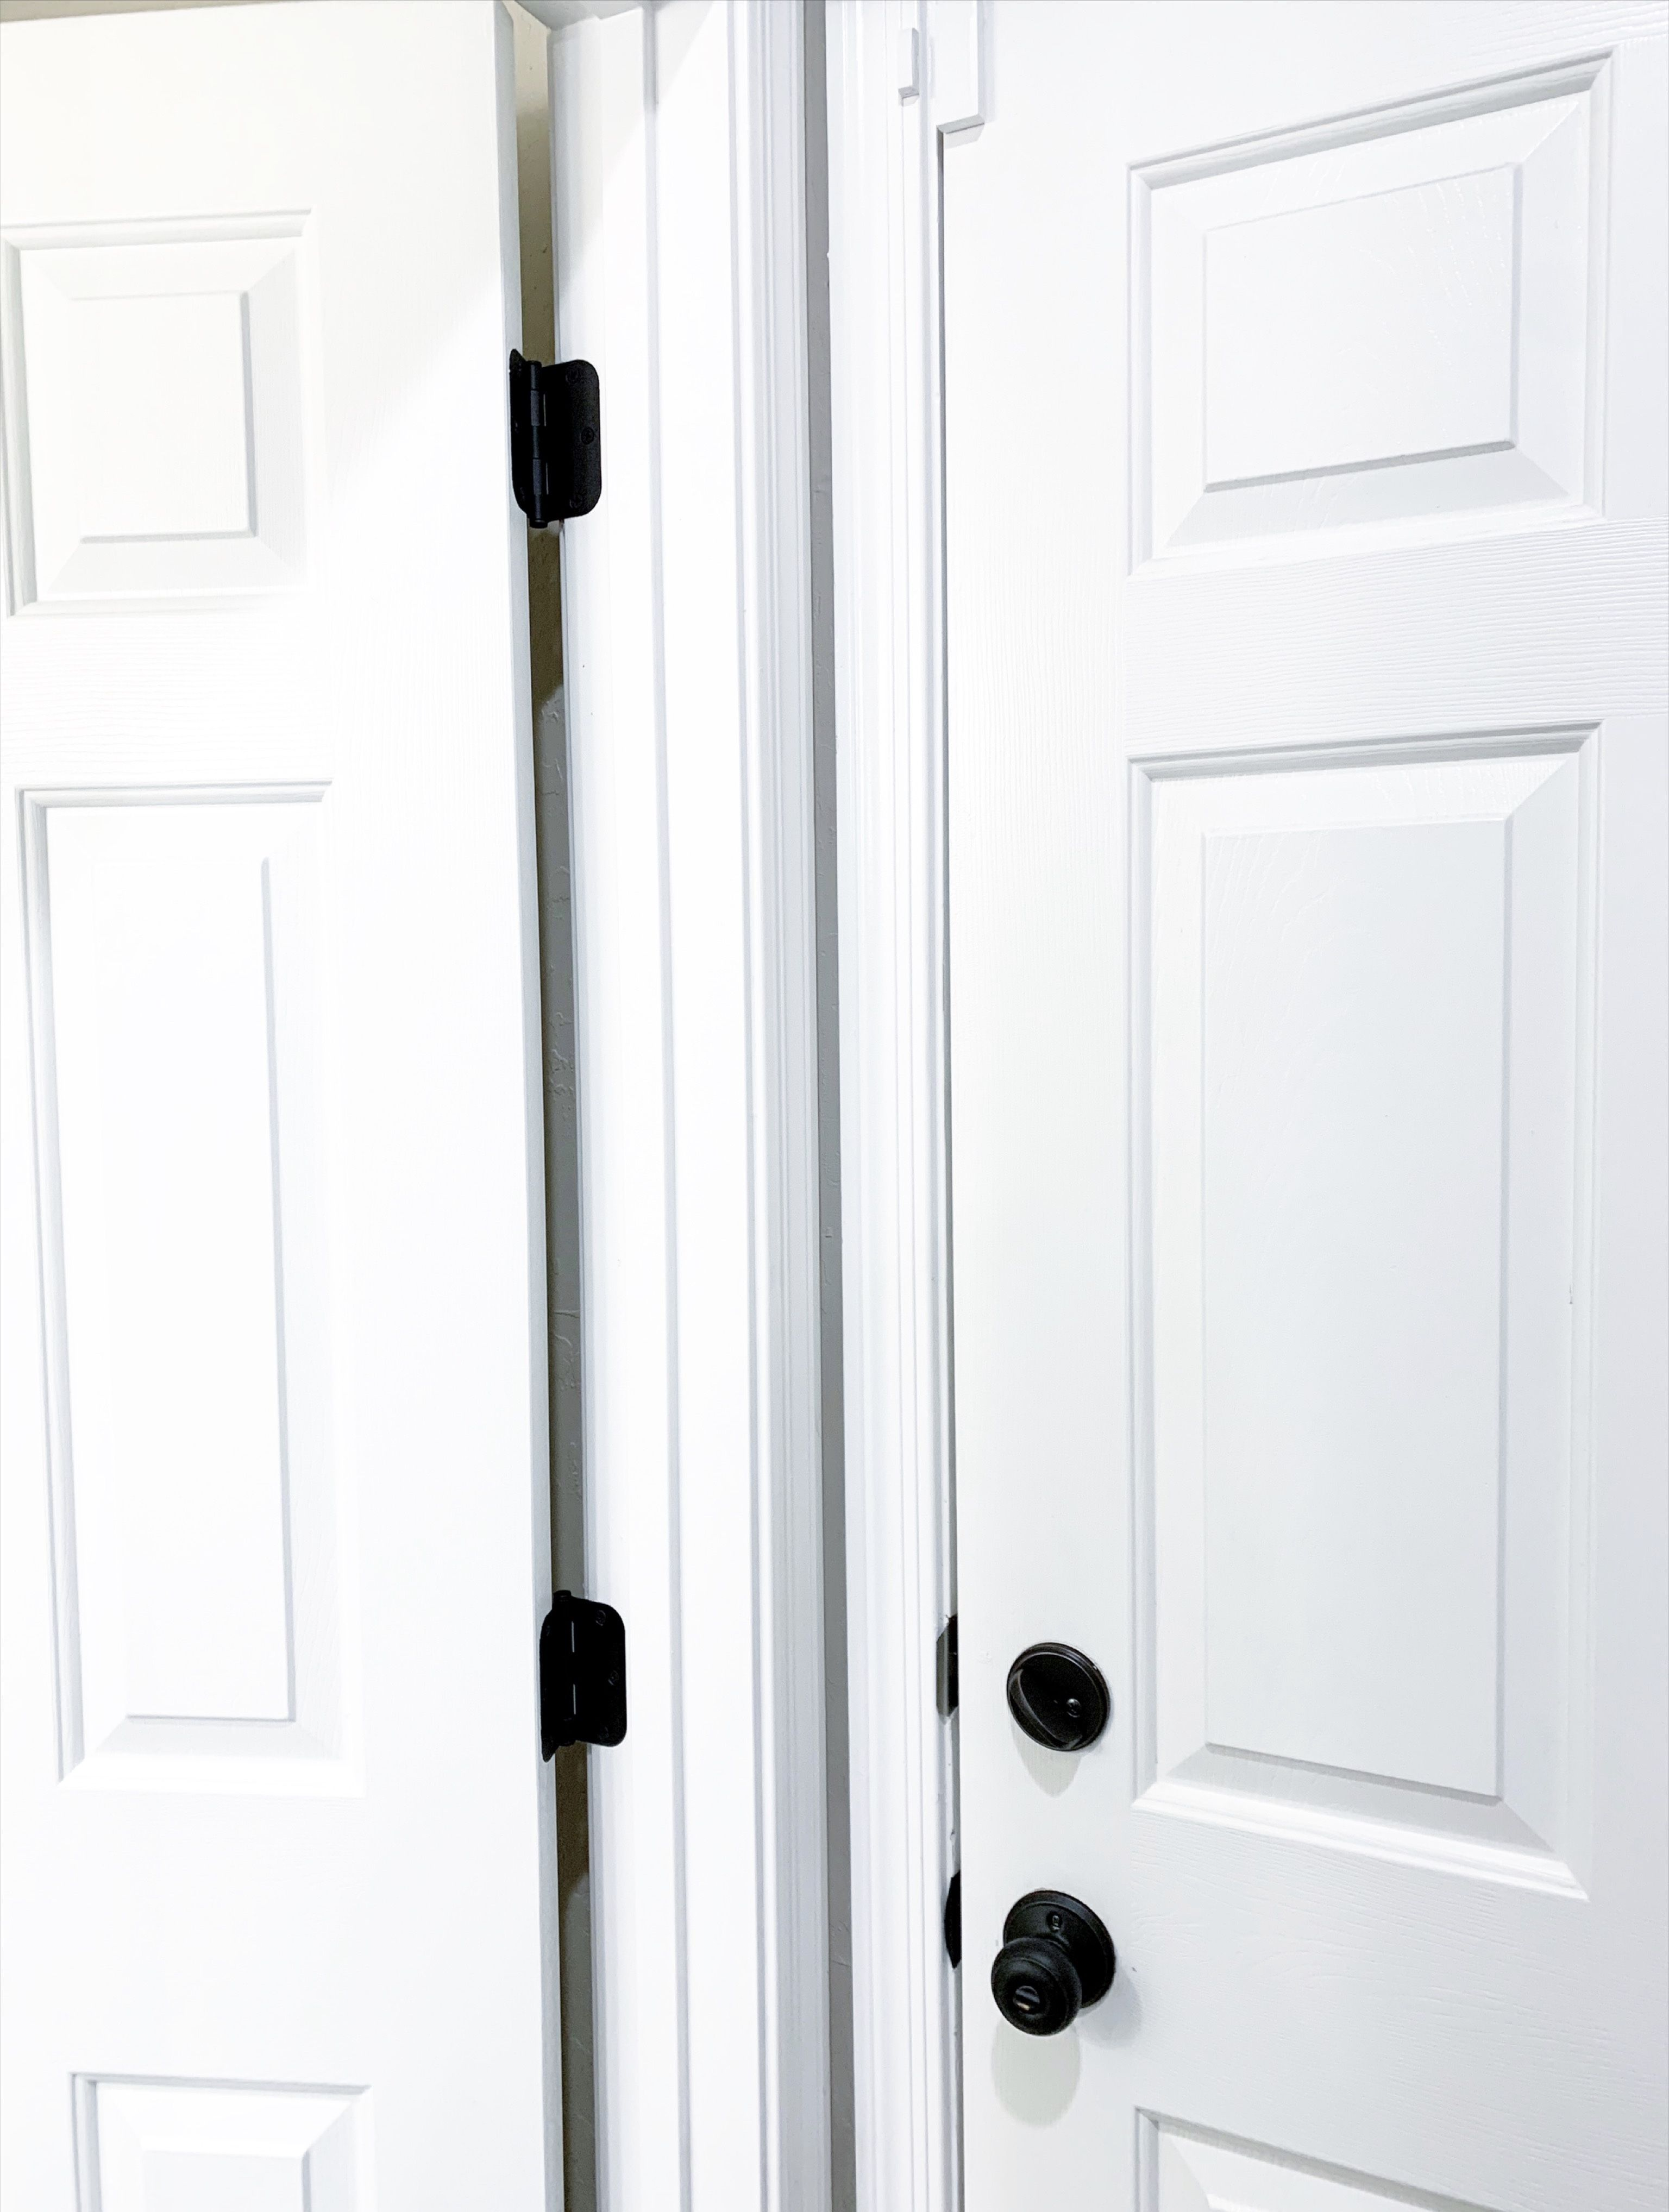 Door Hinges Replaced In 2020 White Doors Black Door Handles Black Door Hinges